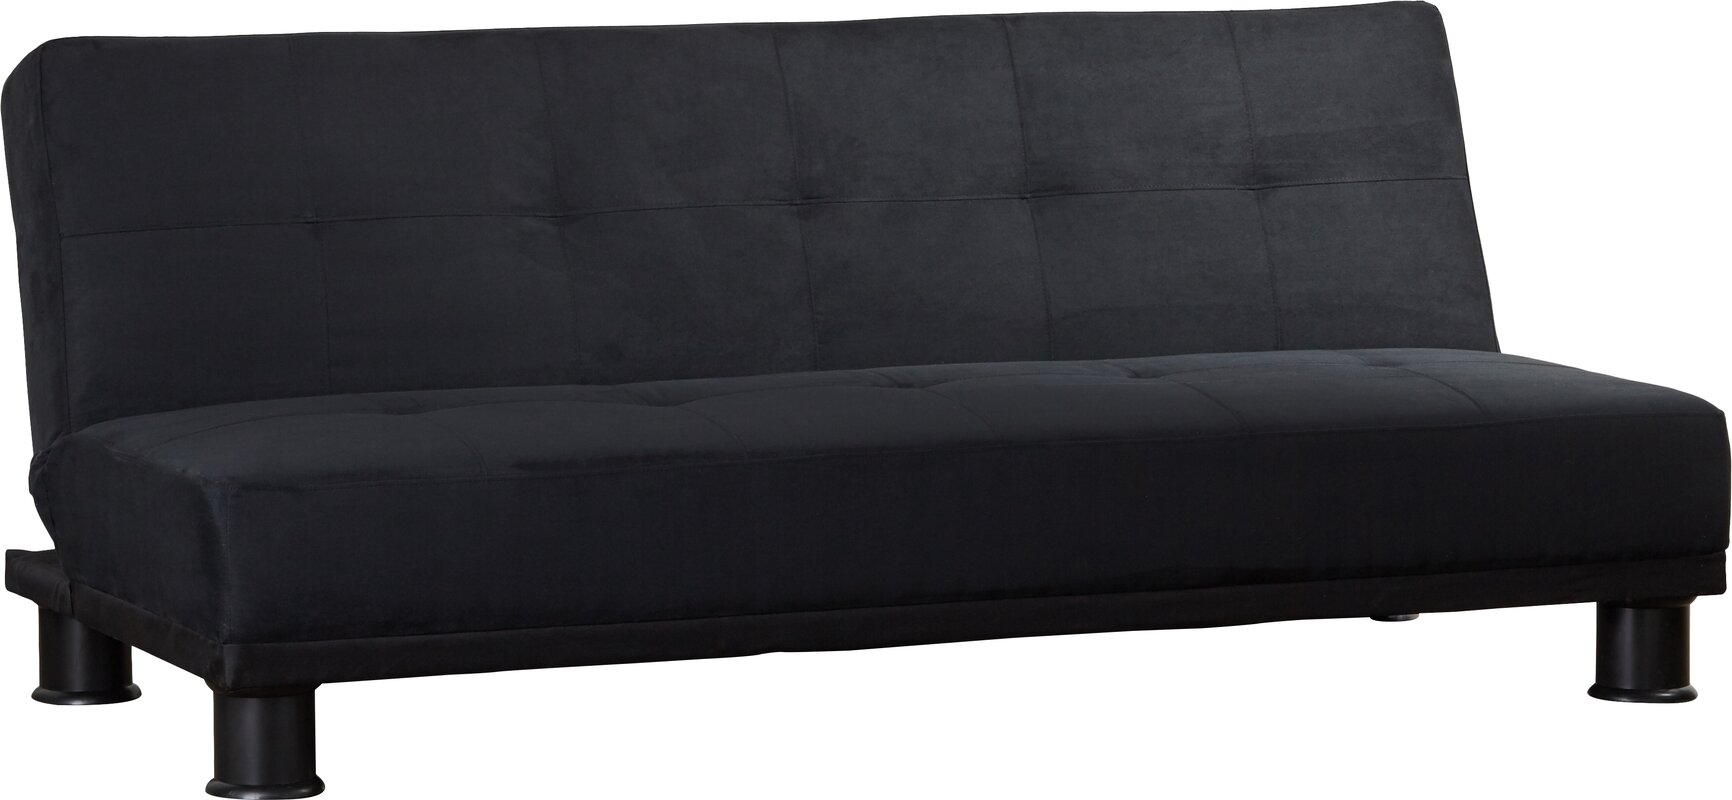 sofa beds with good mattress 3 seater clic clac sofa bed in grey maisons du monde thesofa. Black Bedroom Furniture Sets. Home Design Ideas